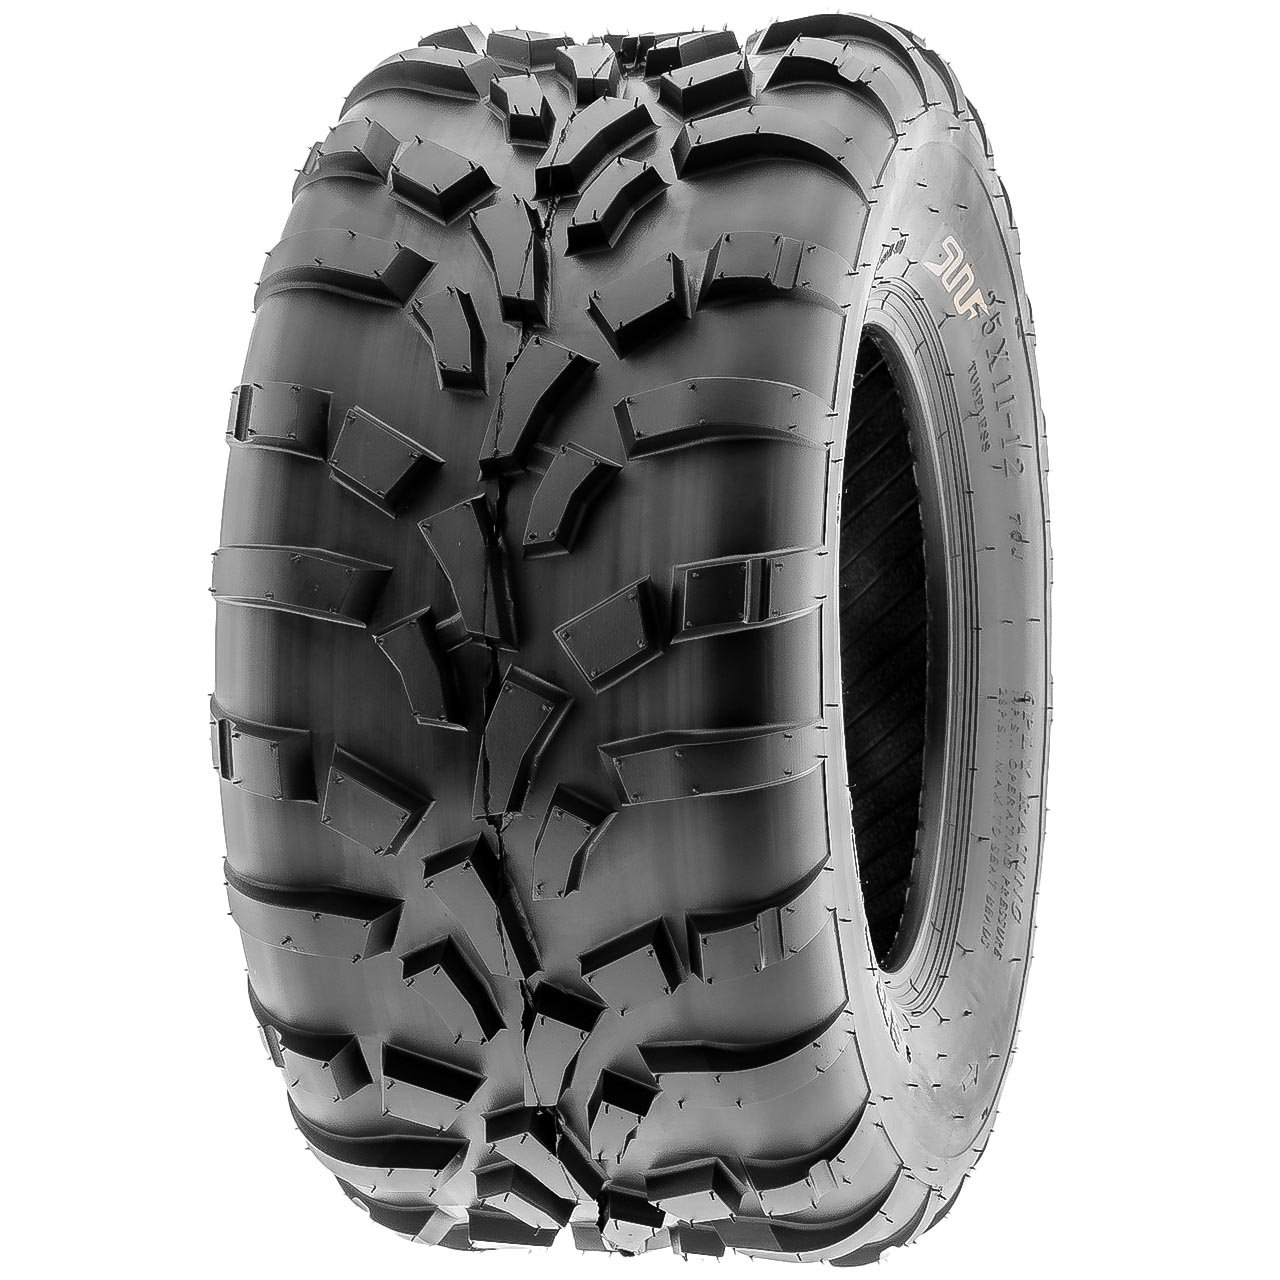 Pair of 2 SunF 25x11-12 AT-XC ATV/UTV Off-Road Tires , 6PR , Directional Knobby Tread | A010 by SunF (Image #8)